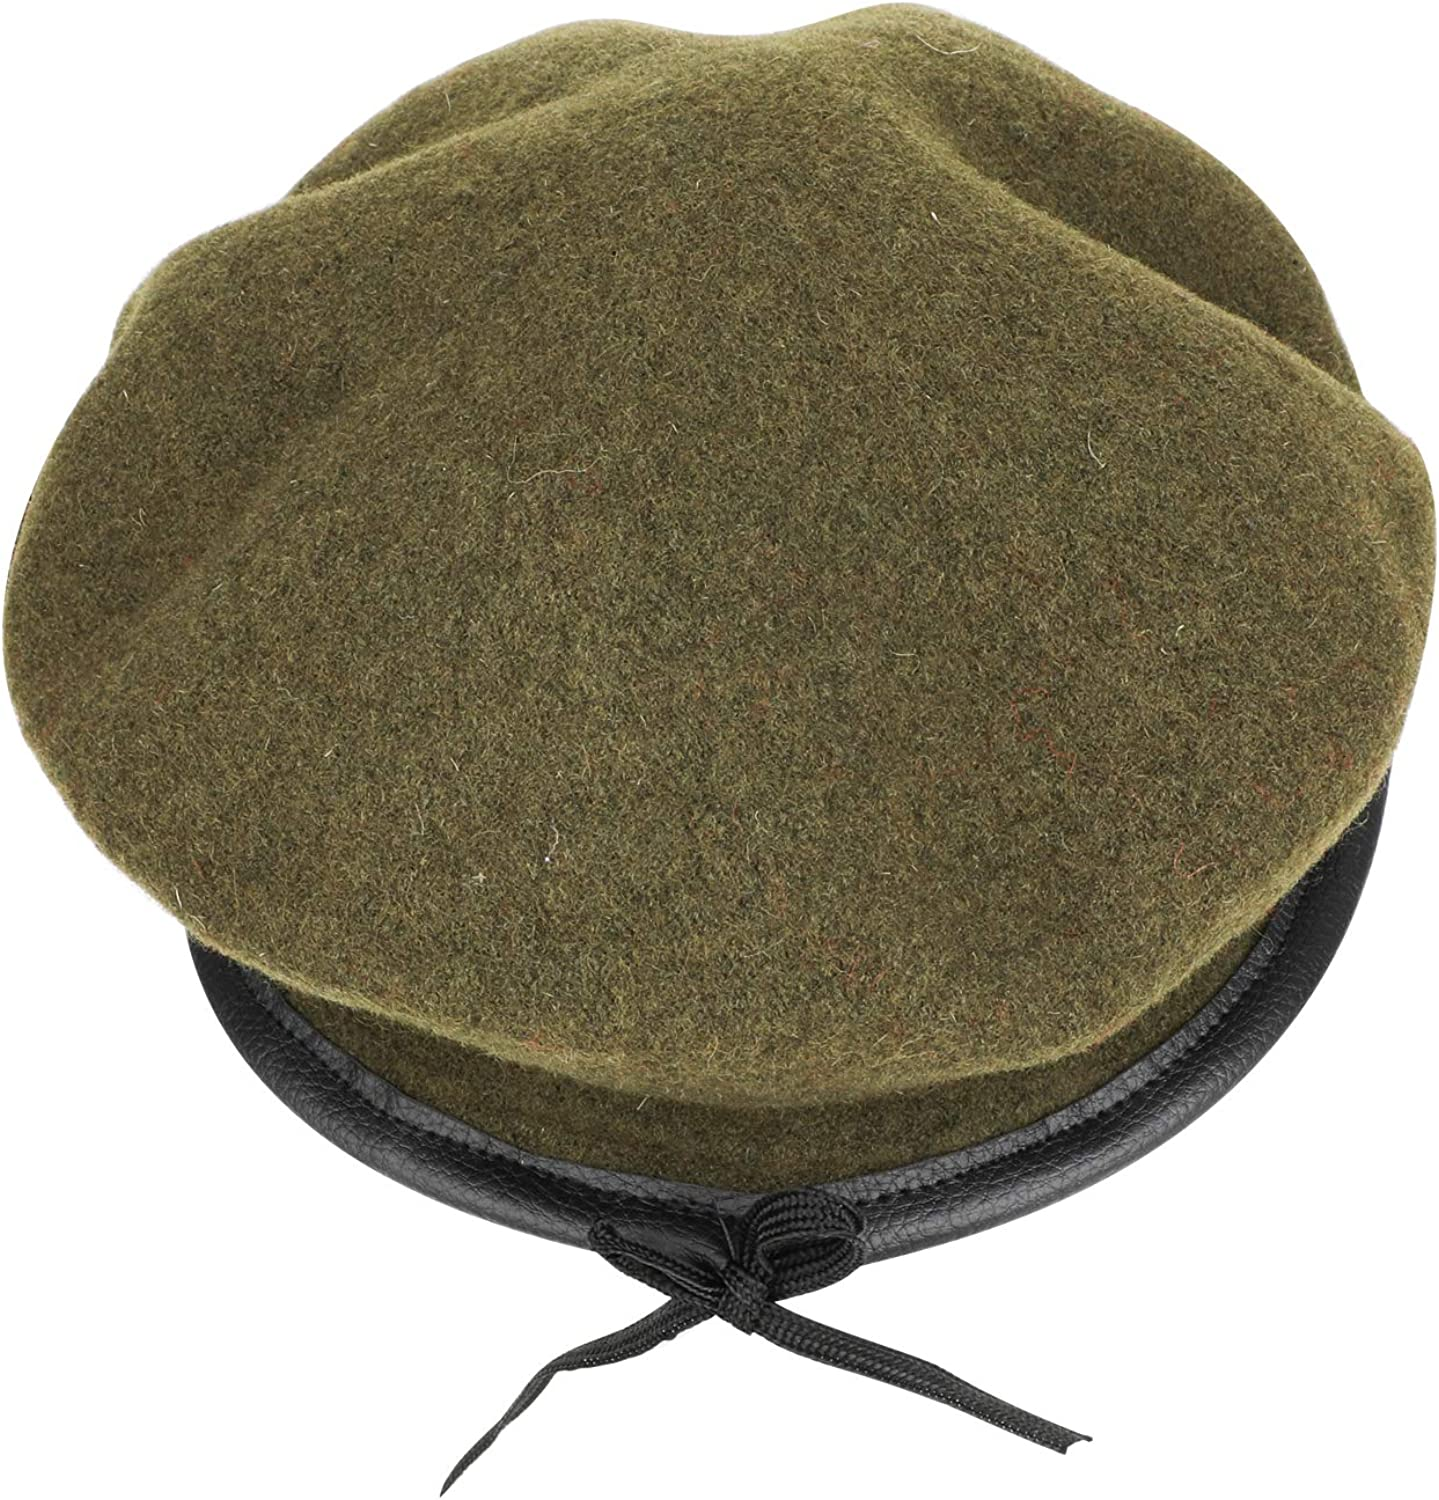 TAGVO Wool Berets One Size Fits Most Mens Ladies Girls Boys Military Army Style Berets with Leather Trim Adjustable